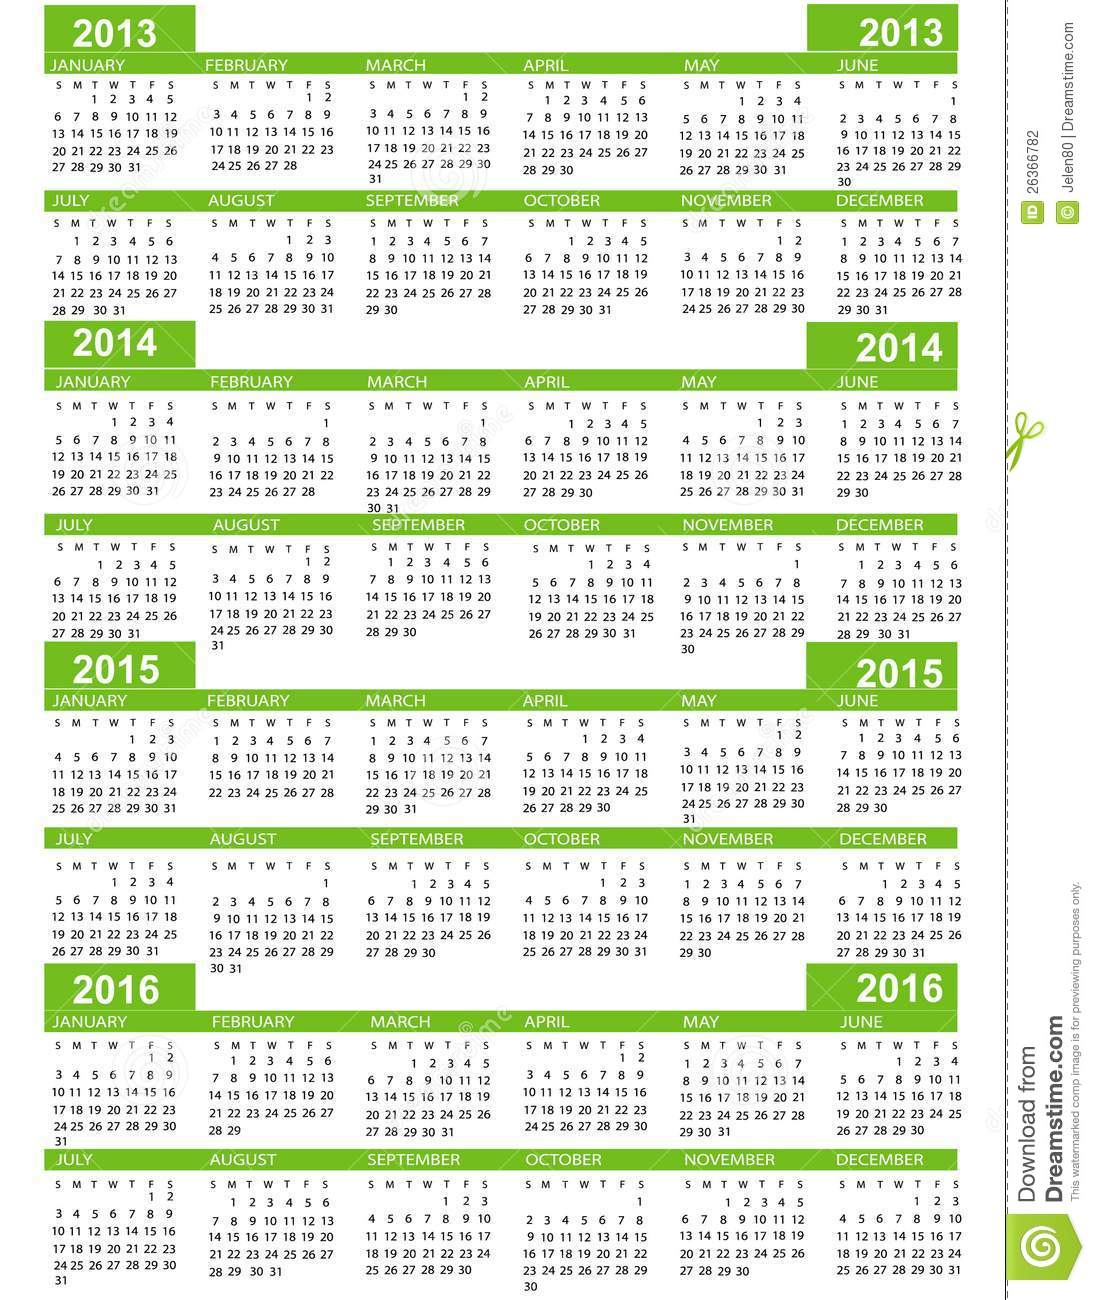 Calendar for New Year 2013 2014 2015 2016 with green lines.